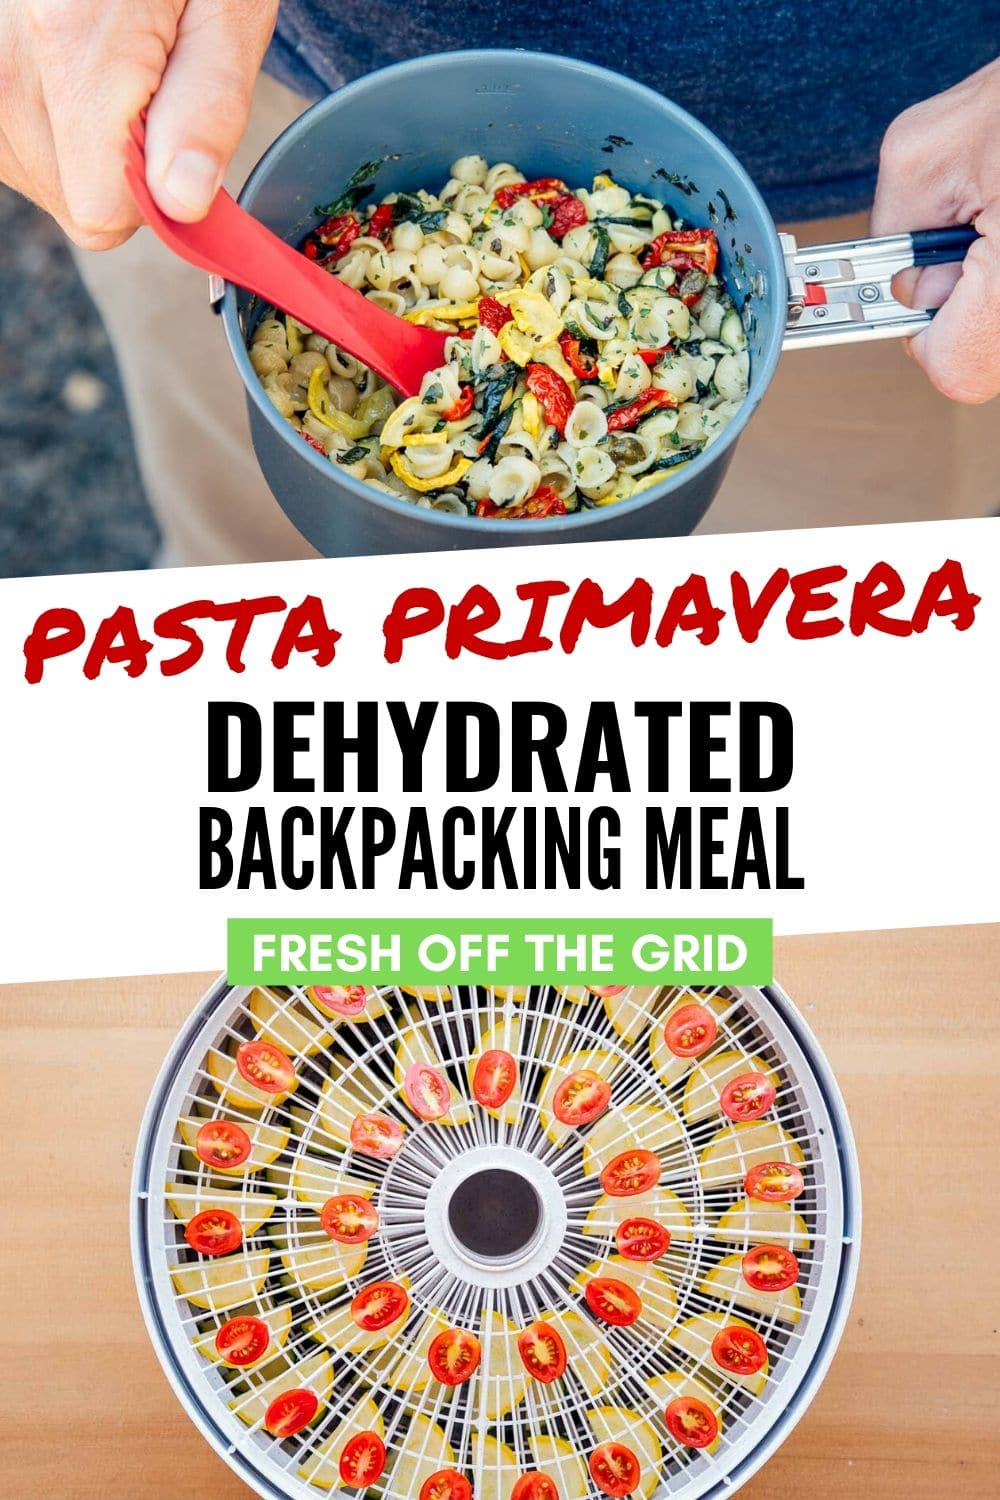 Fresh and filling, this dehydrated pasta primavera is not your typical backpacking food. Loaded with zucchini, summer squash, and tomatoes, this meal offers that burst of vegetables that you've been craving after a few days on the trail. This will quickly become one of your favorite dehydrator recipes! via @freshoffthegrid